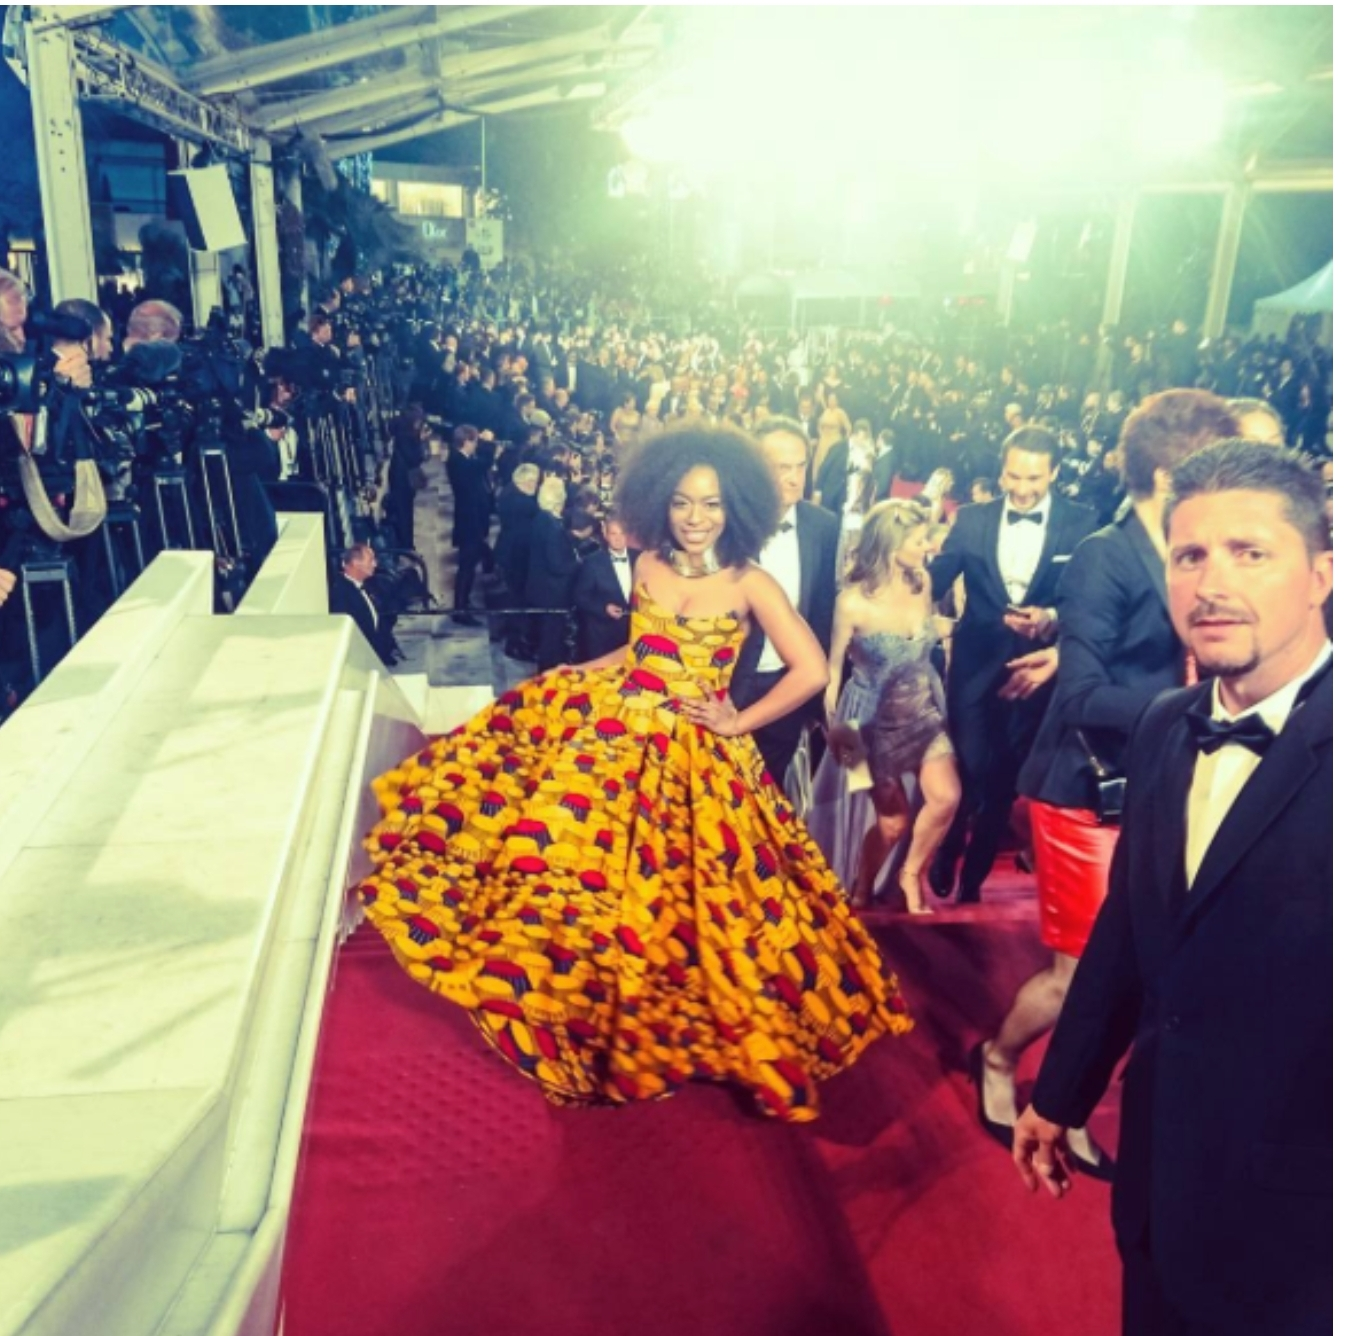 WAKANDA AND WAX: PROMOTING THE DYNAMISM OF AFRICAN WAX PRINT IN ENTERTAINMENT AND ON THE RED CARPET